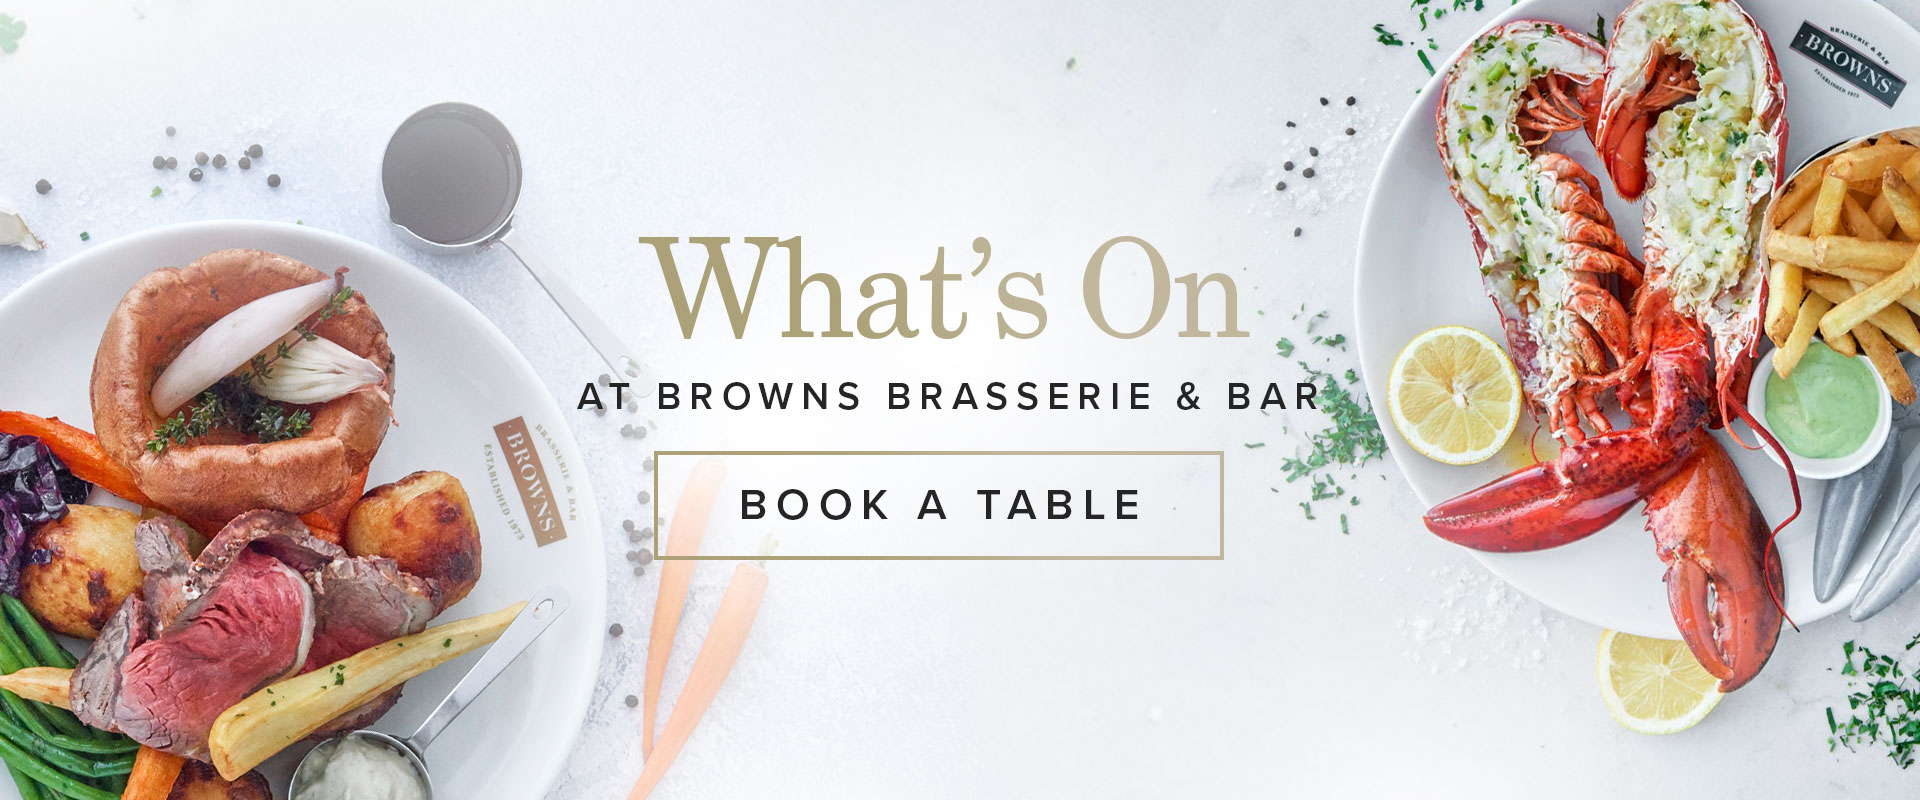 What's on at Browns Manchester | Browns